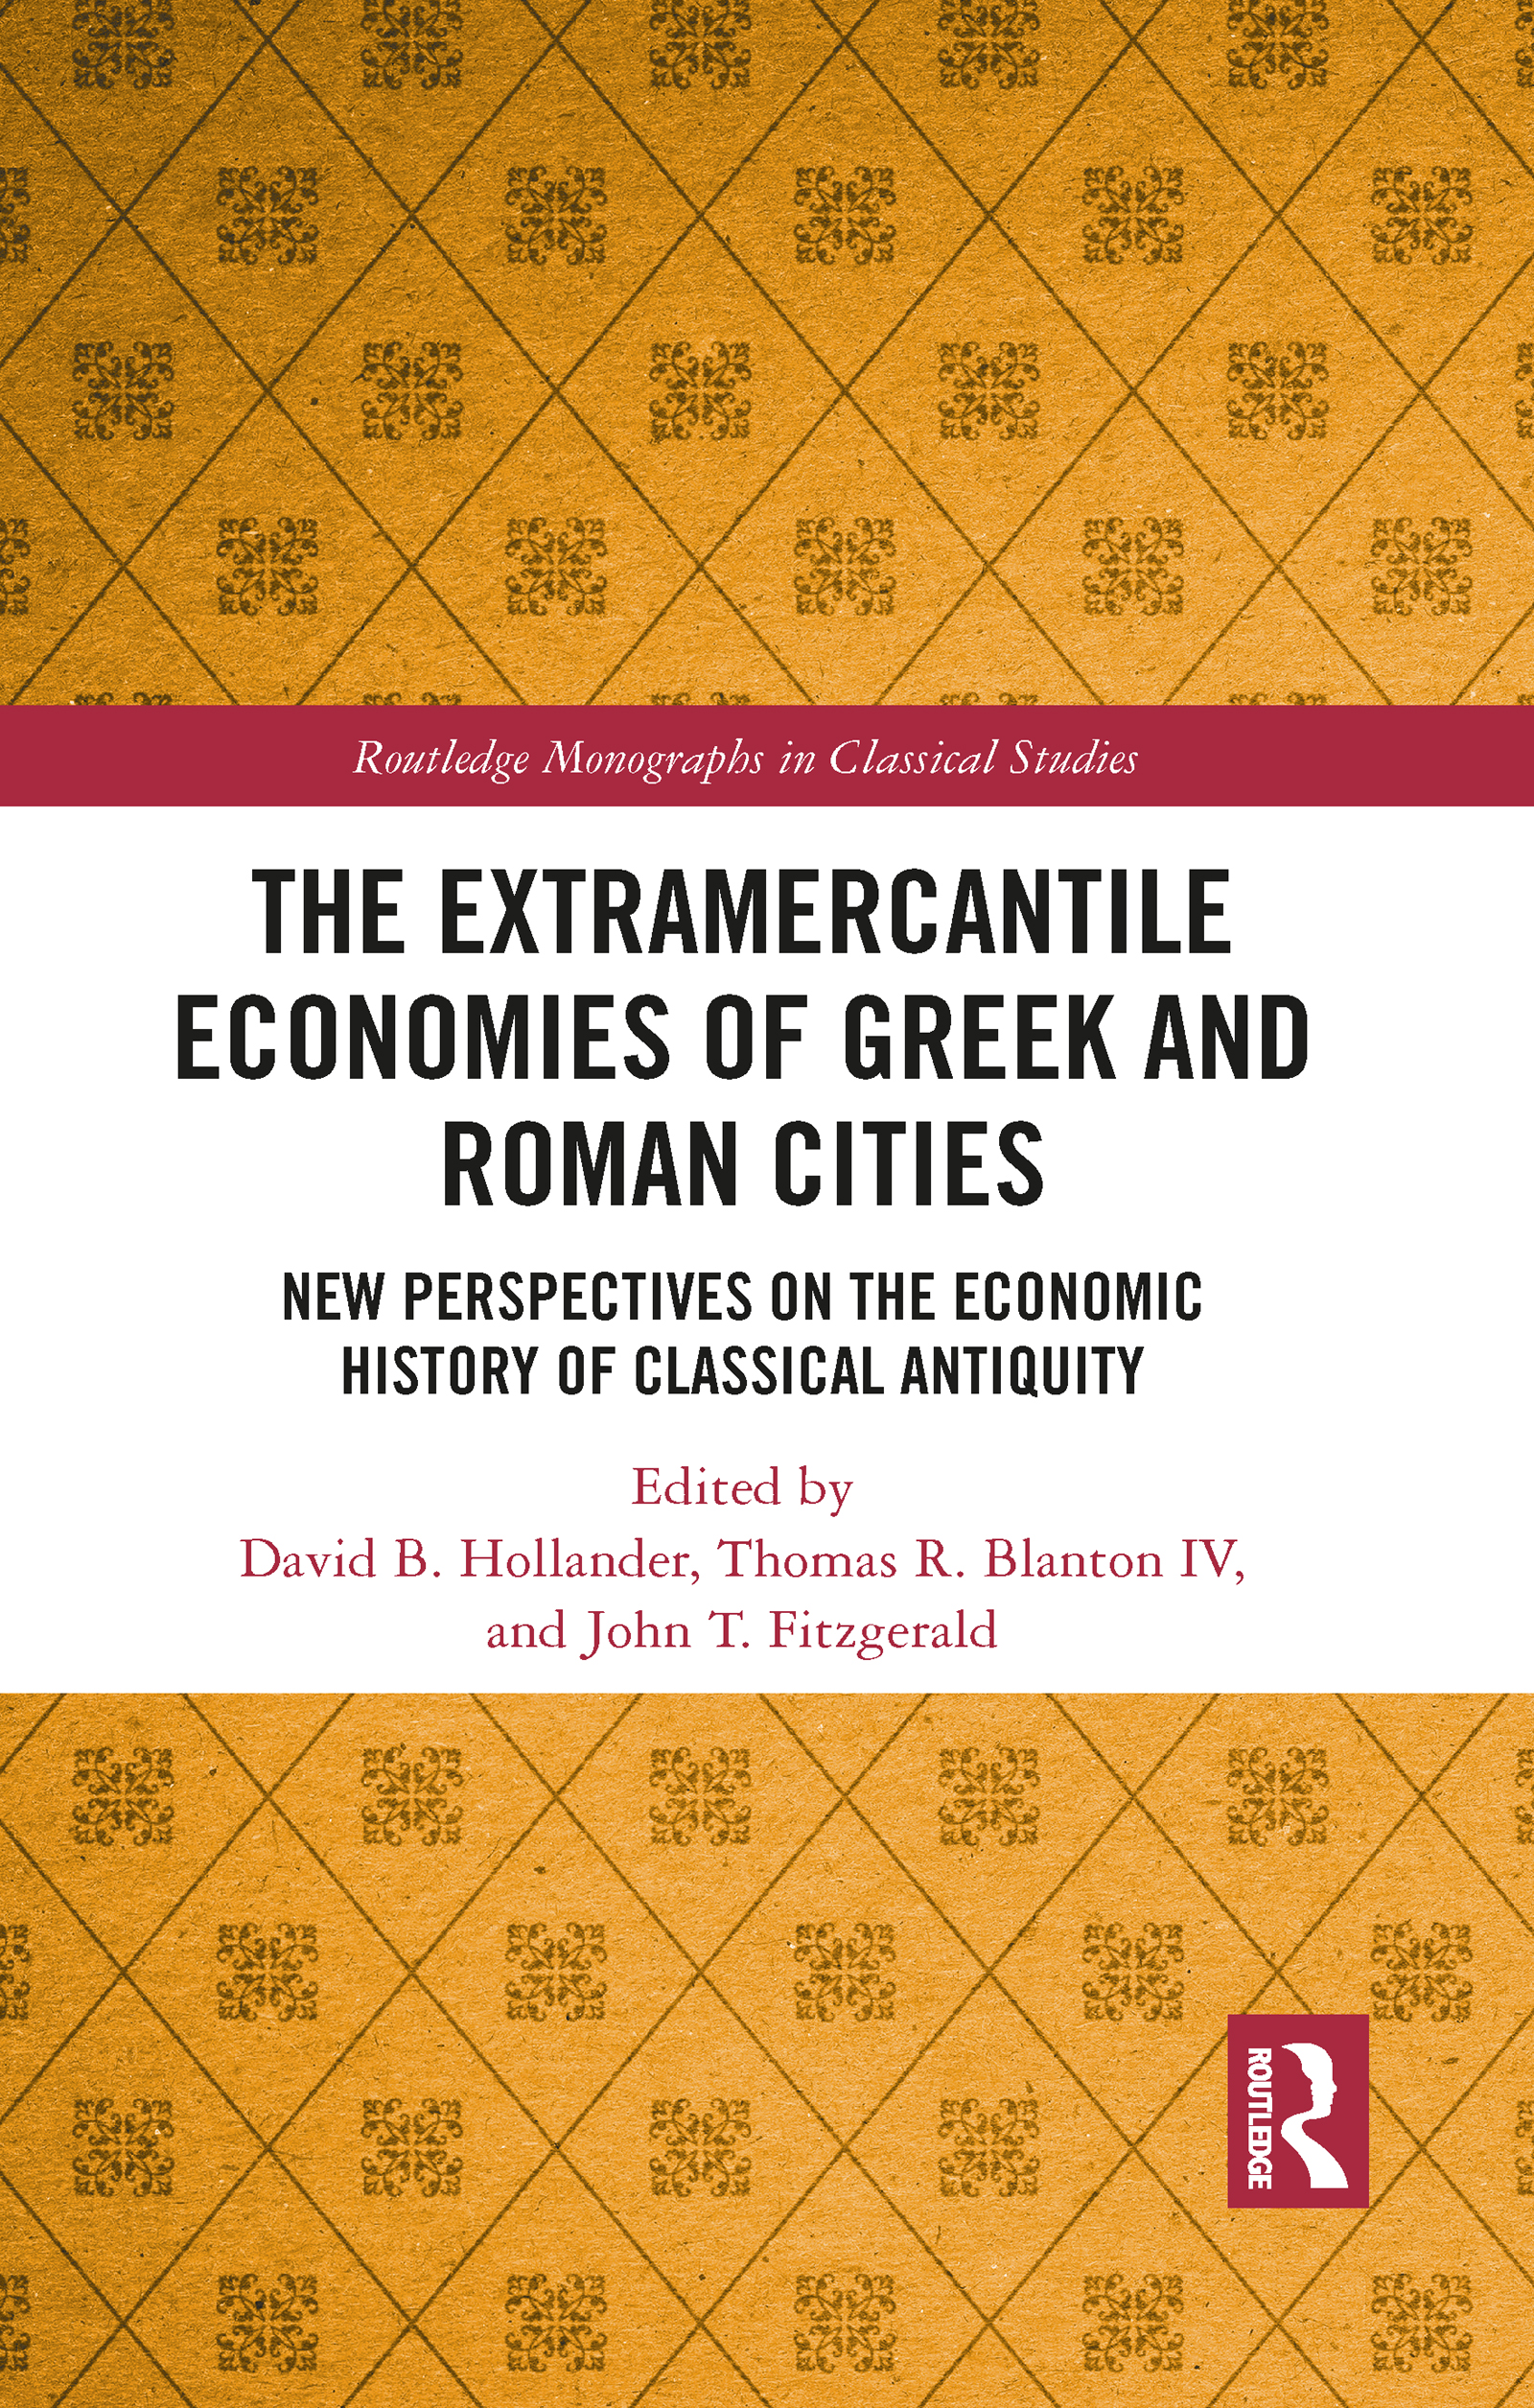 The Extramercantile Economies of Greek and Roman Cities